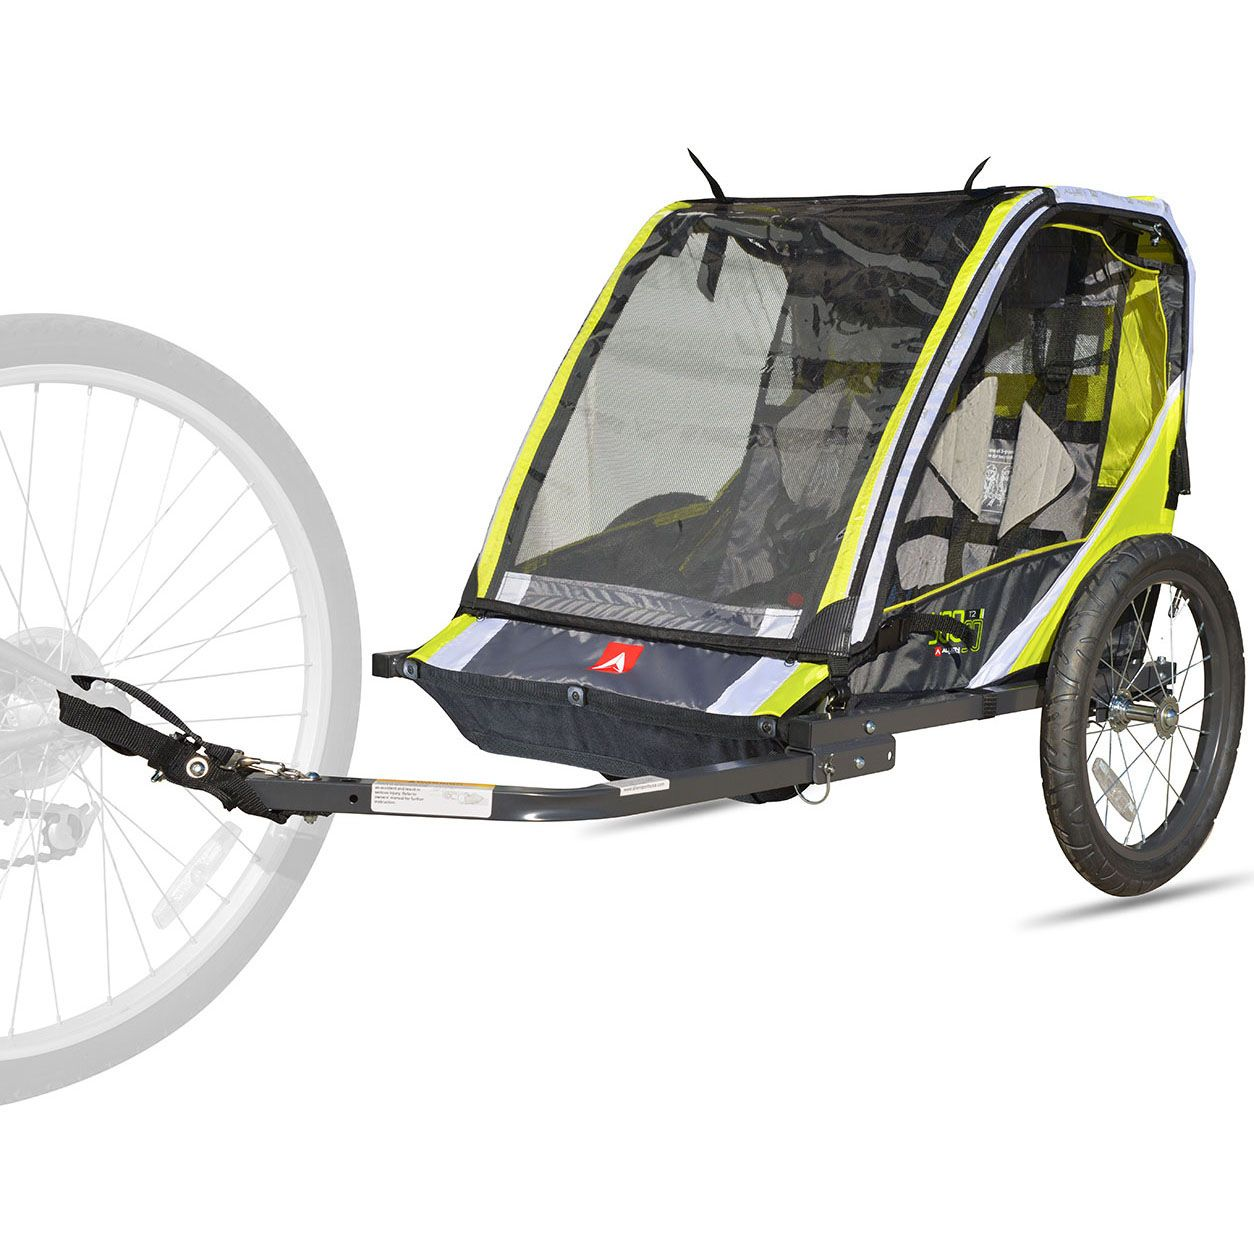 Sports & Outdoors in 2020 Kids bike, Kids bicycle, Child